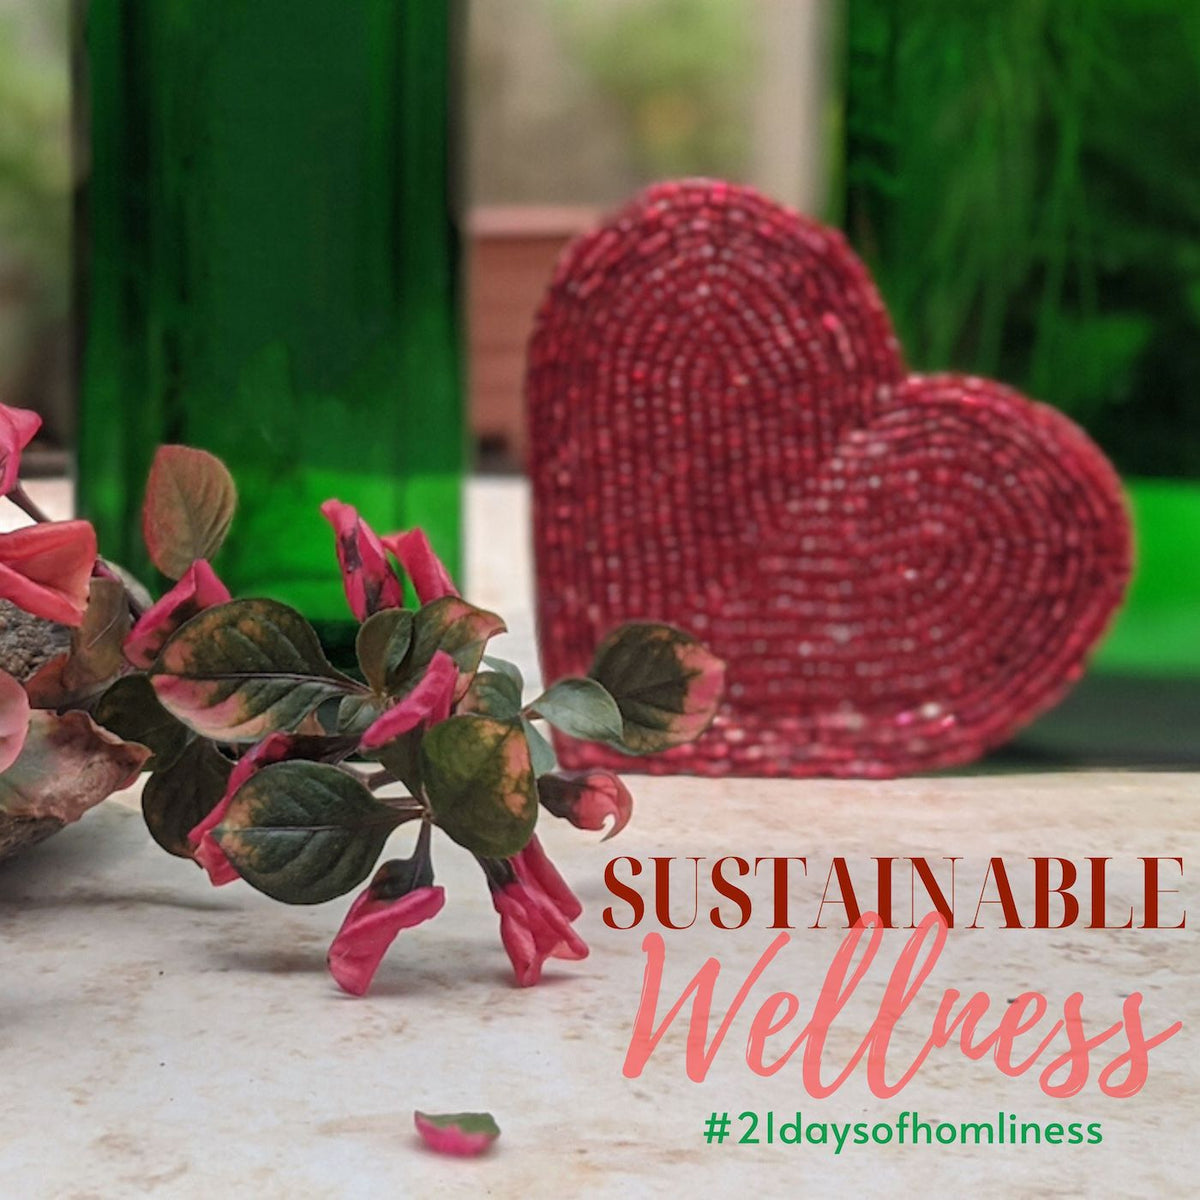 Sustainable Wellness at Home #21DaysofHomeliness